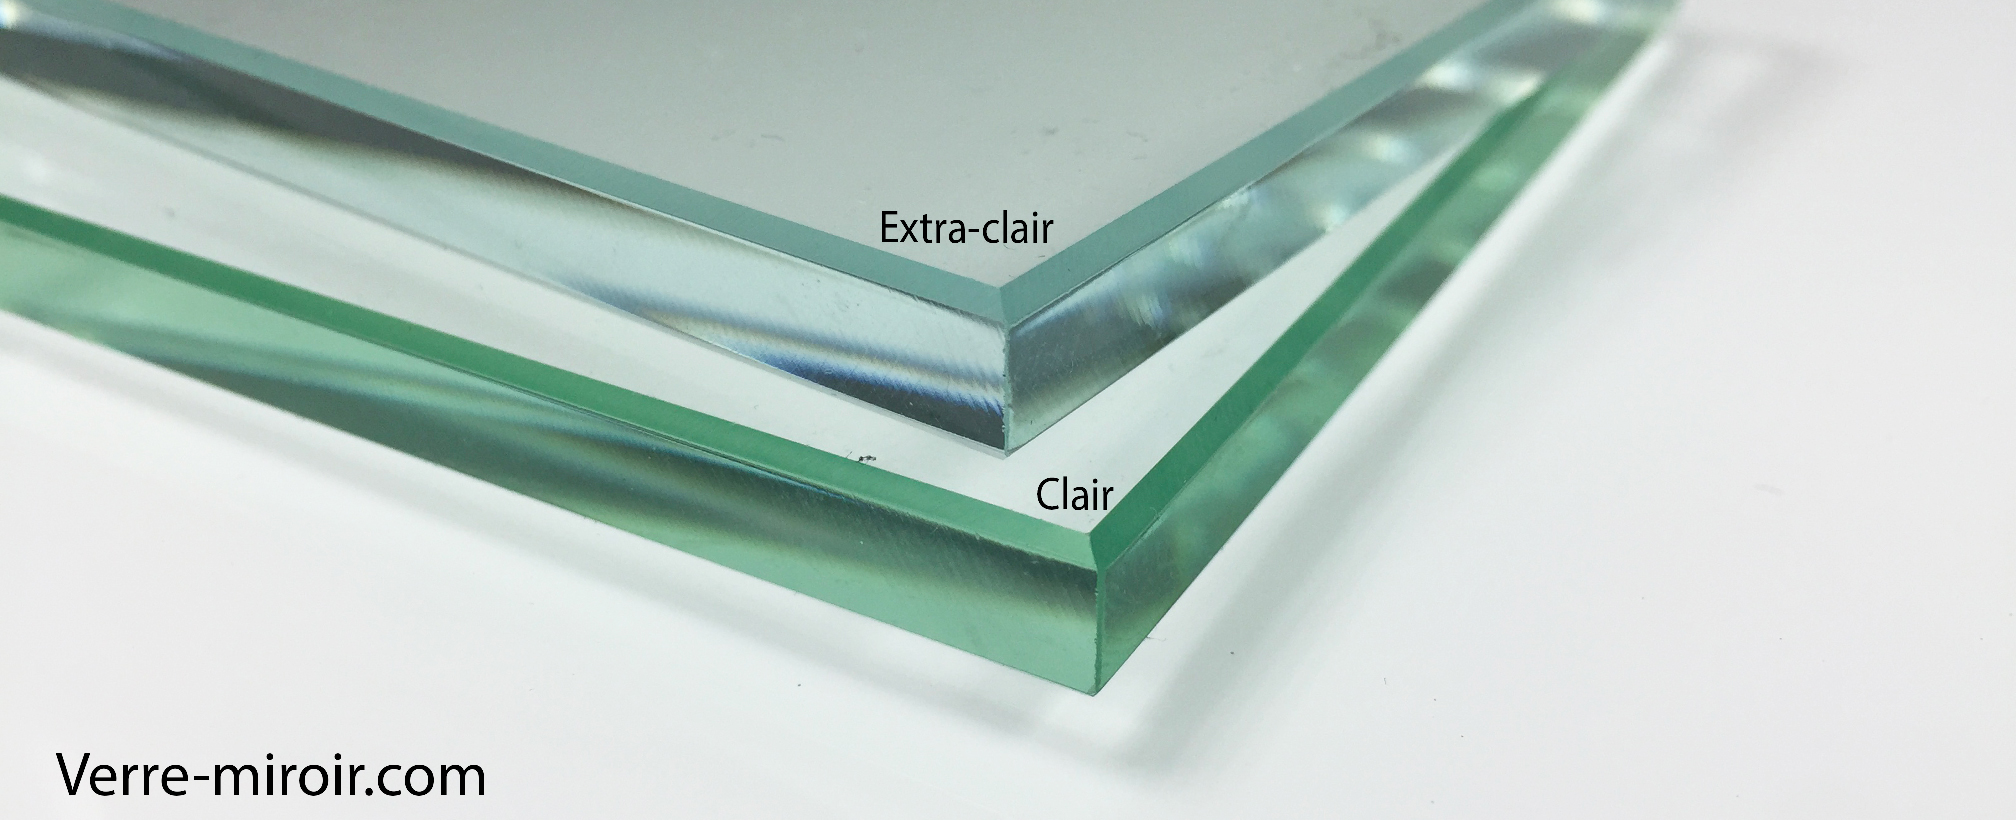 Verre extra clair difference verre clair